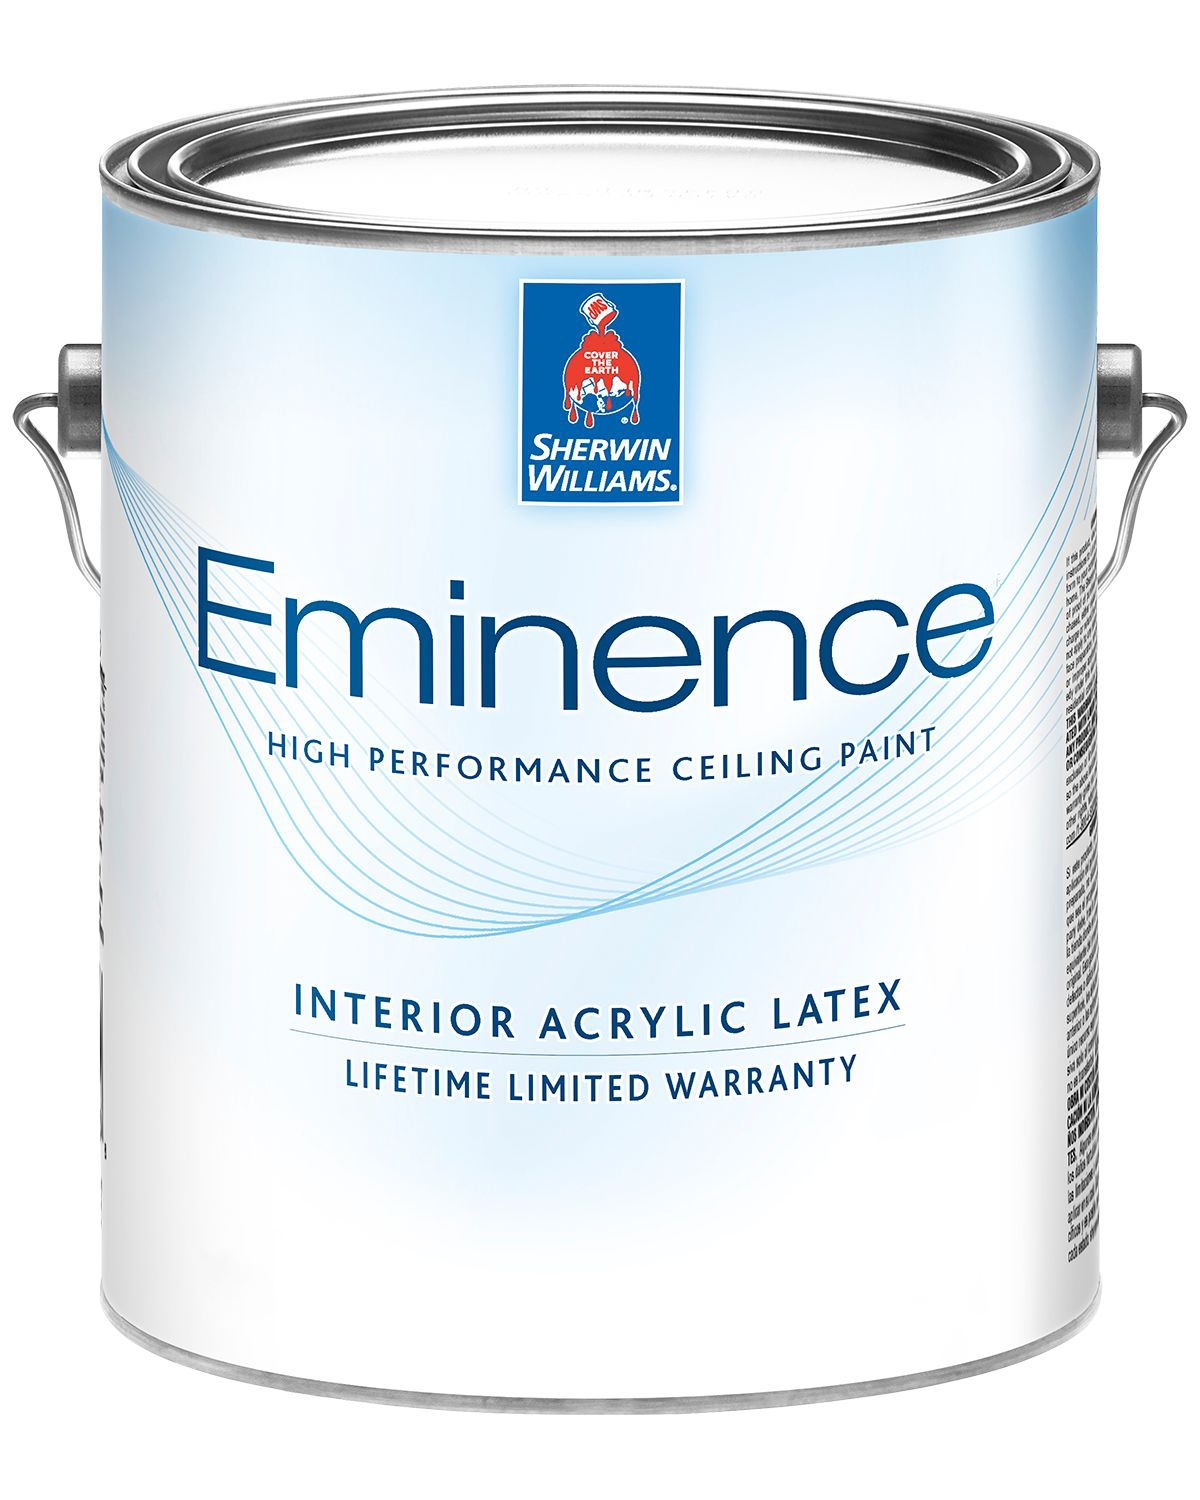 Eminence High Performance Ceiling Paint Sherwin Williams